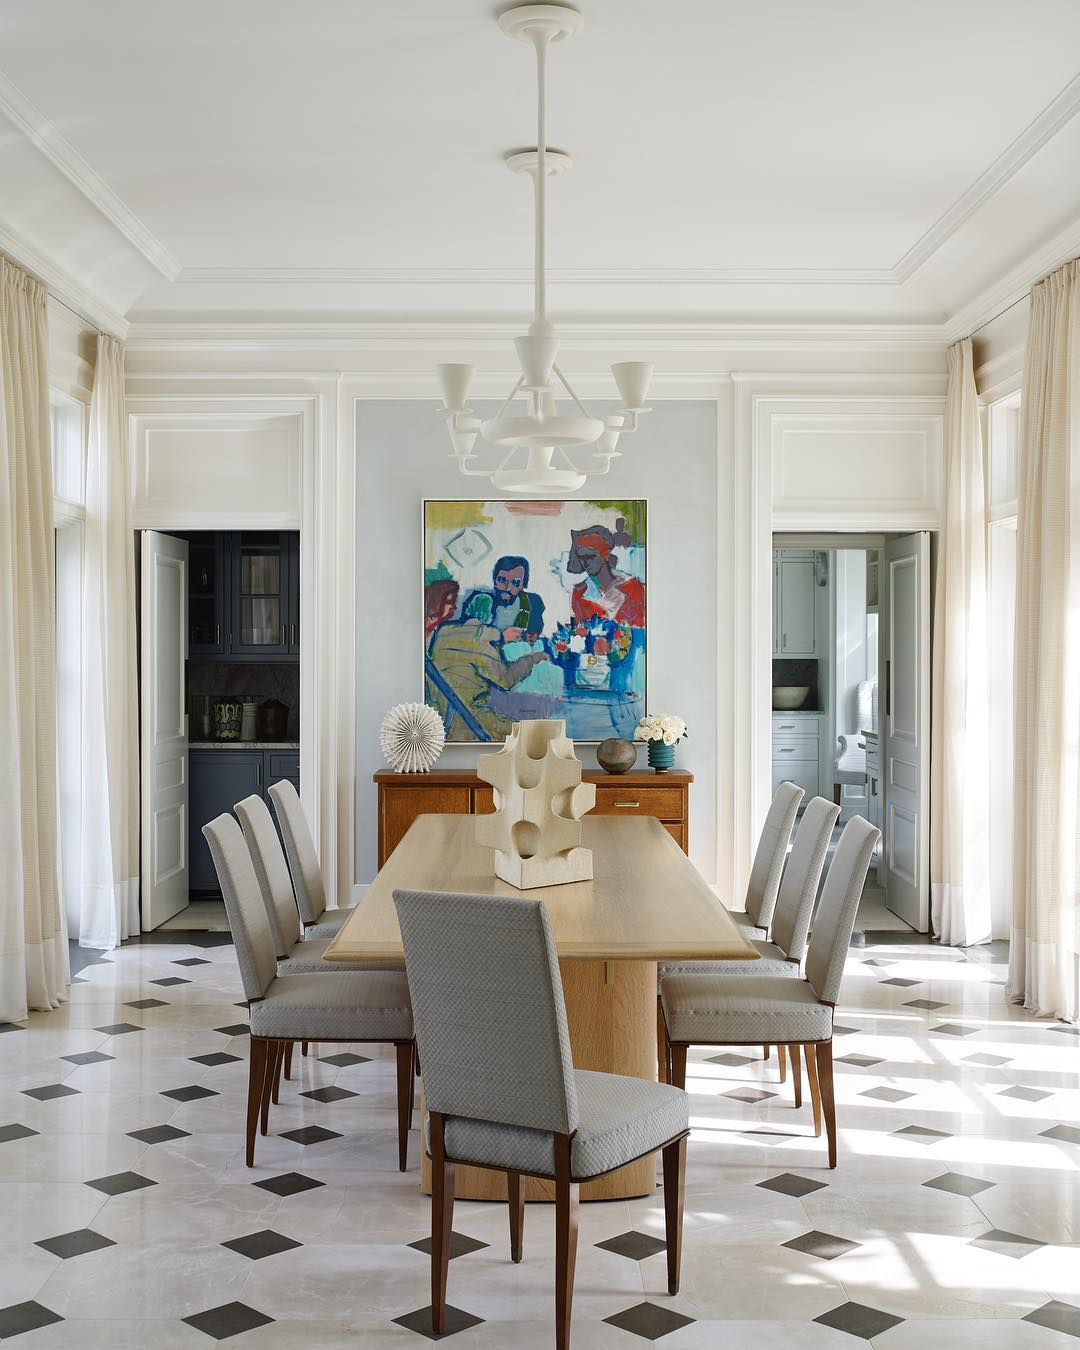 6 Dining Room Trends For The Next Decade You Need To Know About_5